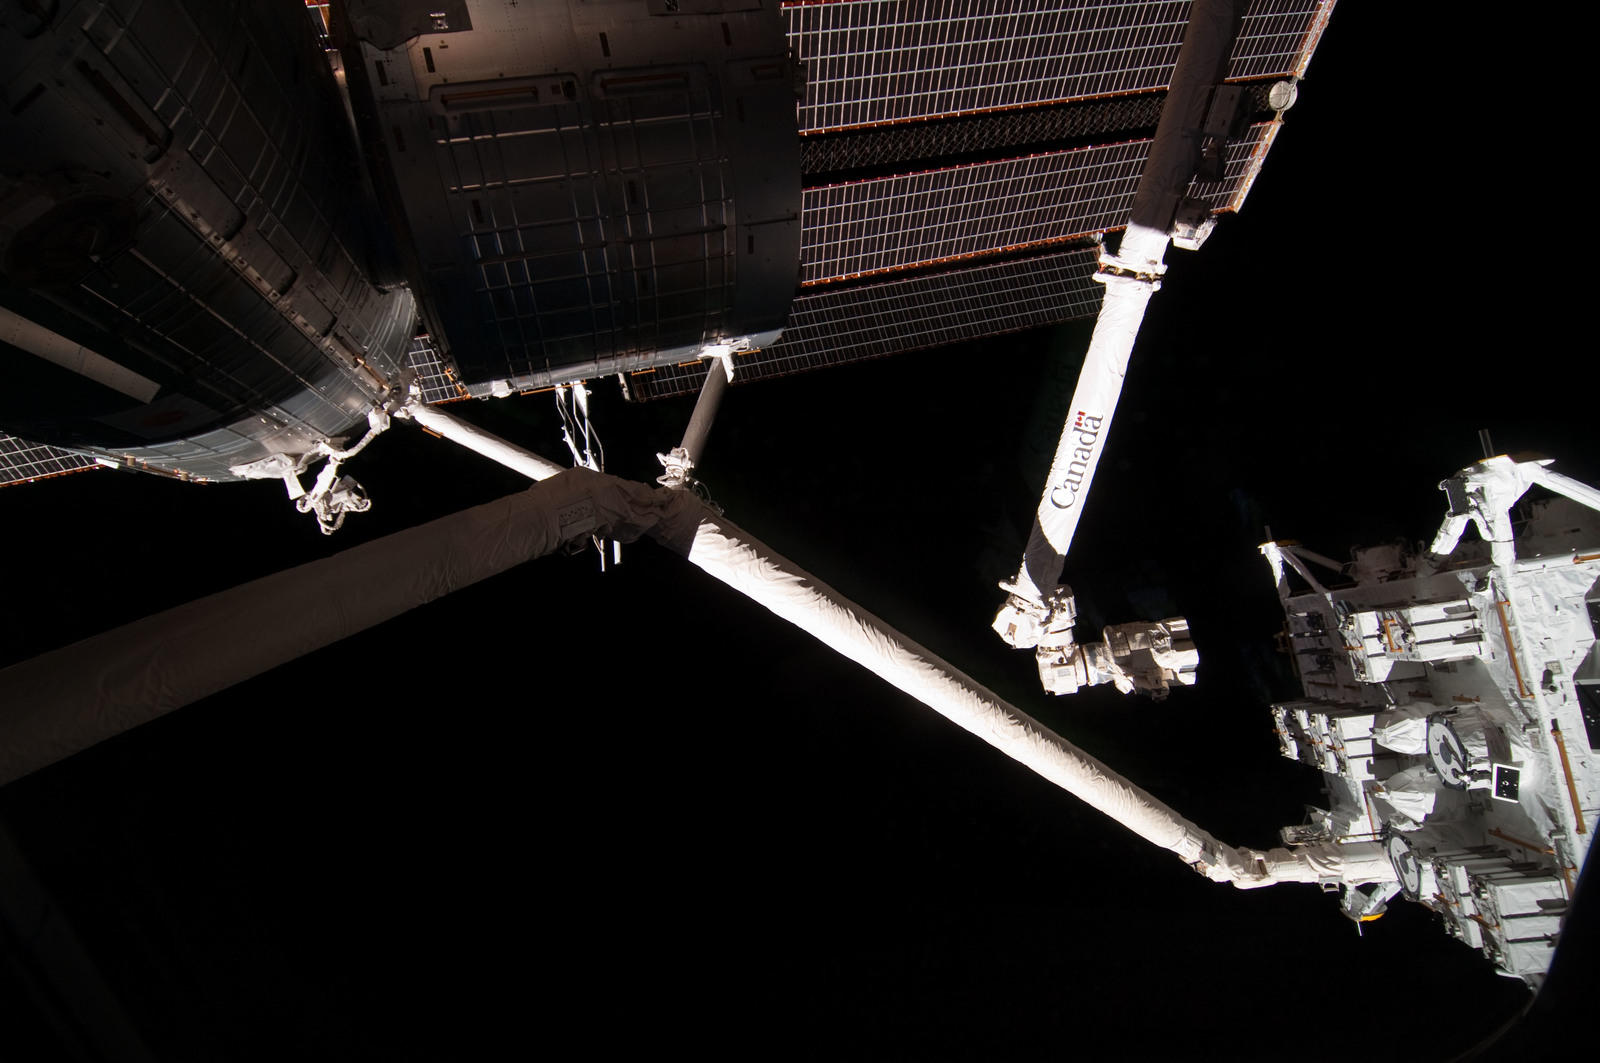 S127E006909 - STS-127 - SSRMS Grappled to JEF during EVA-1 on STS-127 / Expedition 20 Joint Operations